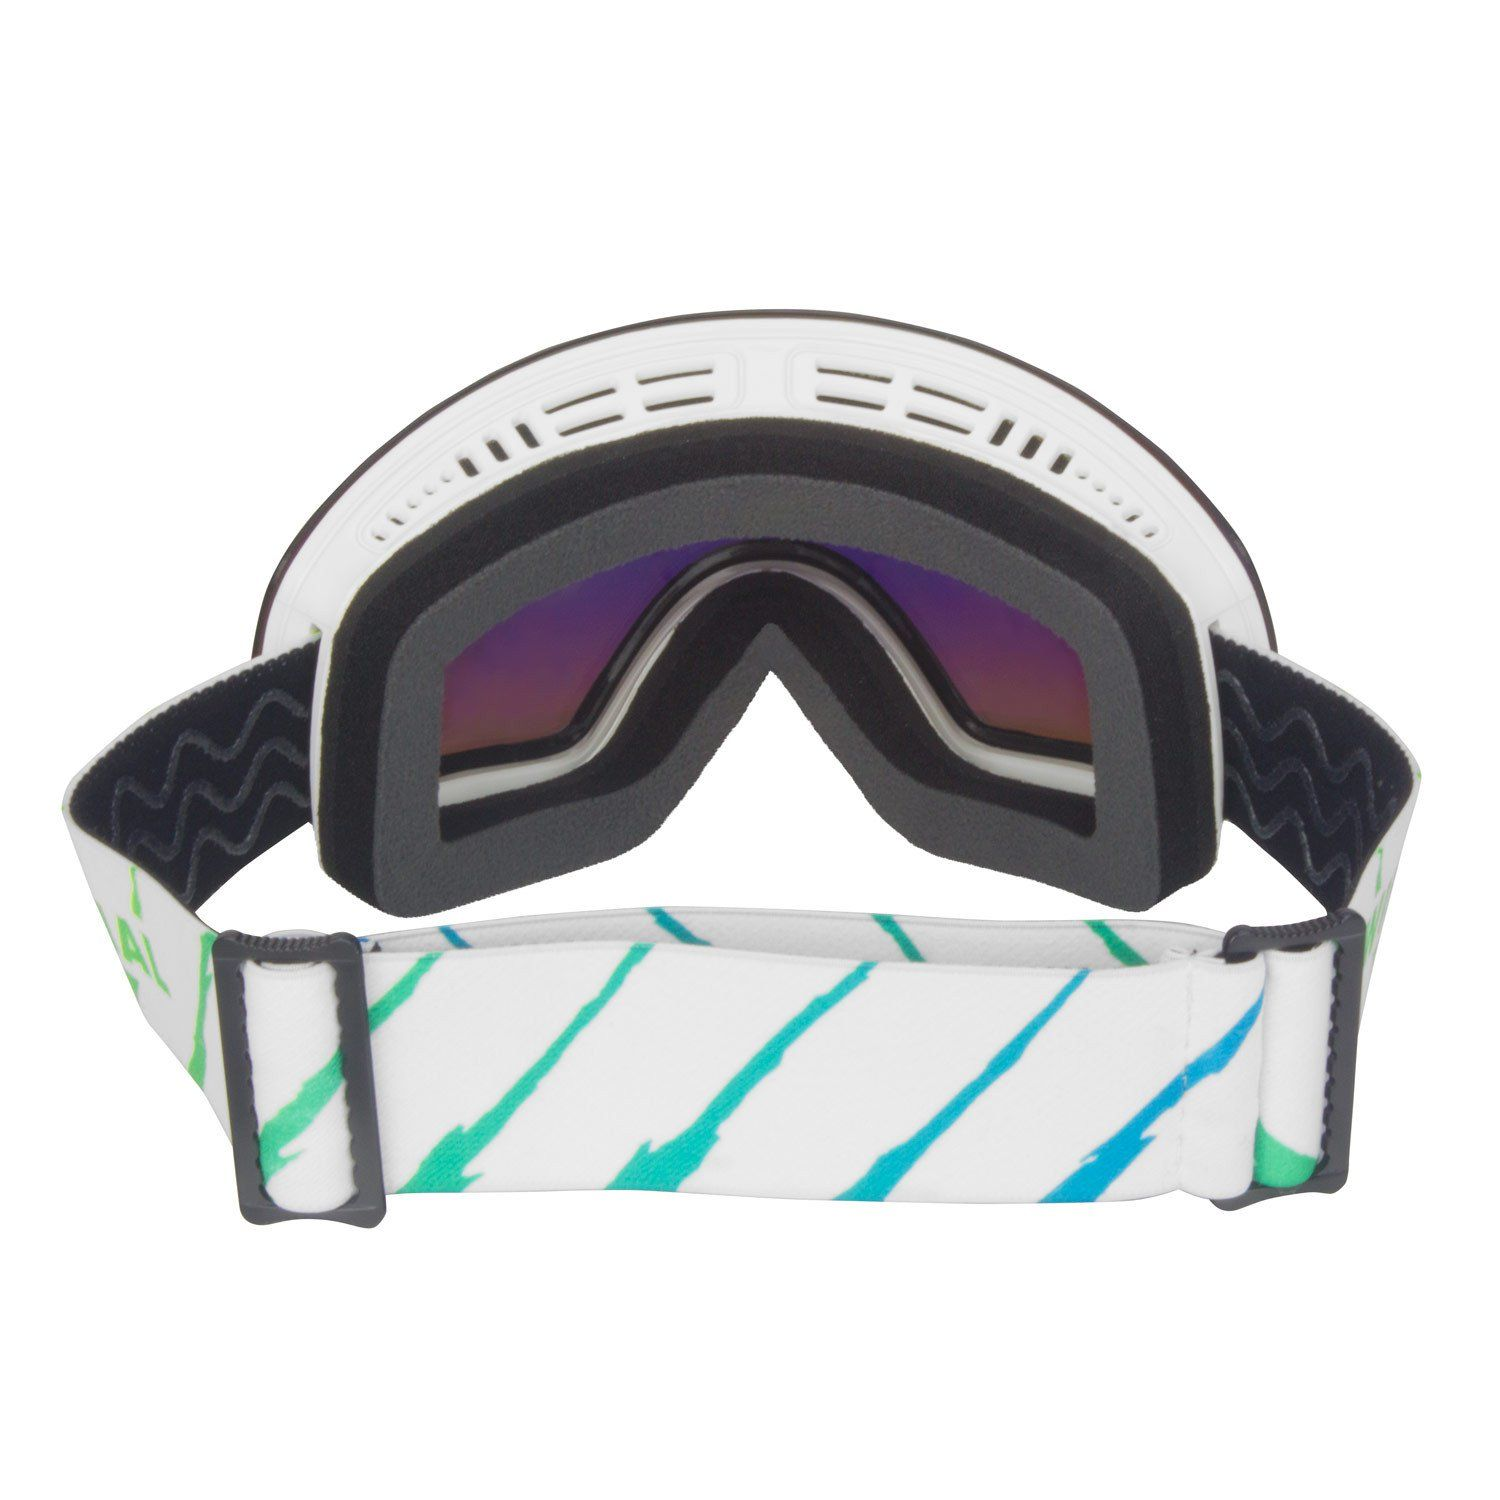 Frameless Skin and Snowboard Googles with Interchangeable